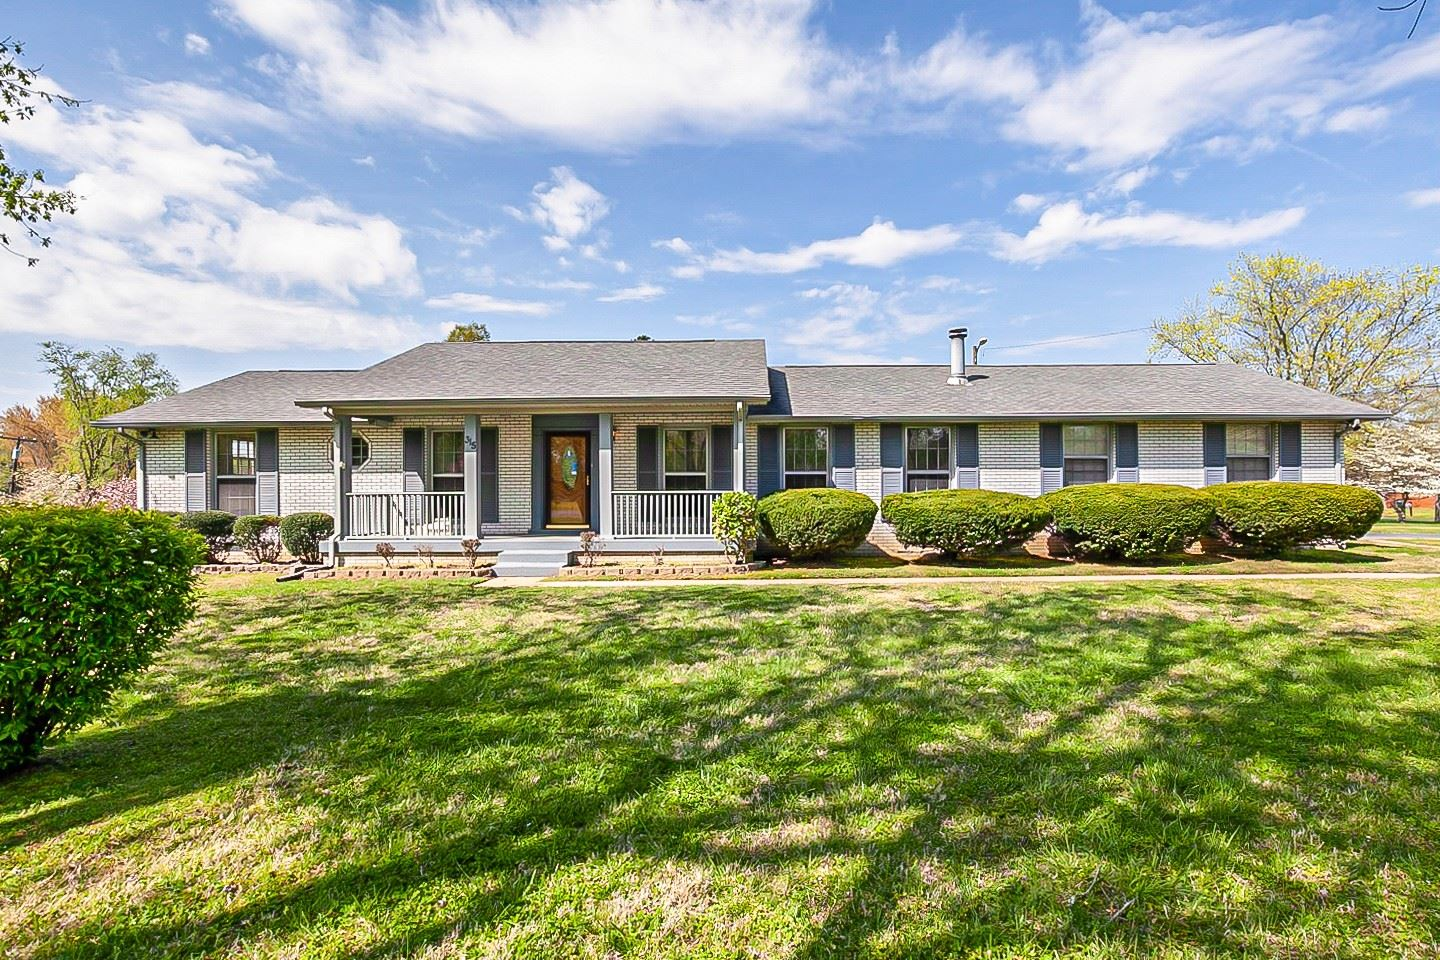 315 Highland Dr, Old Hickory, TN 37138 - MLS#: 2242885